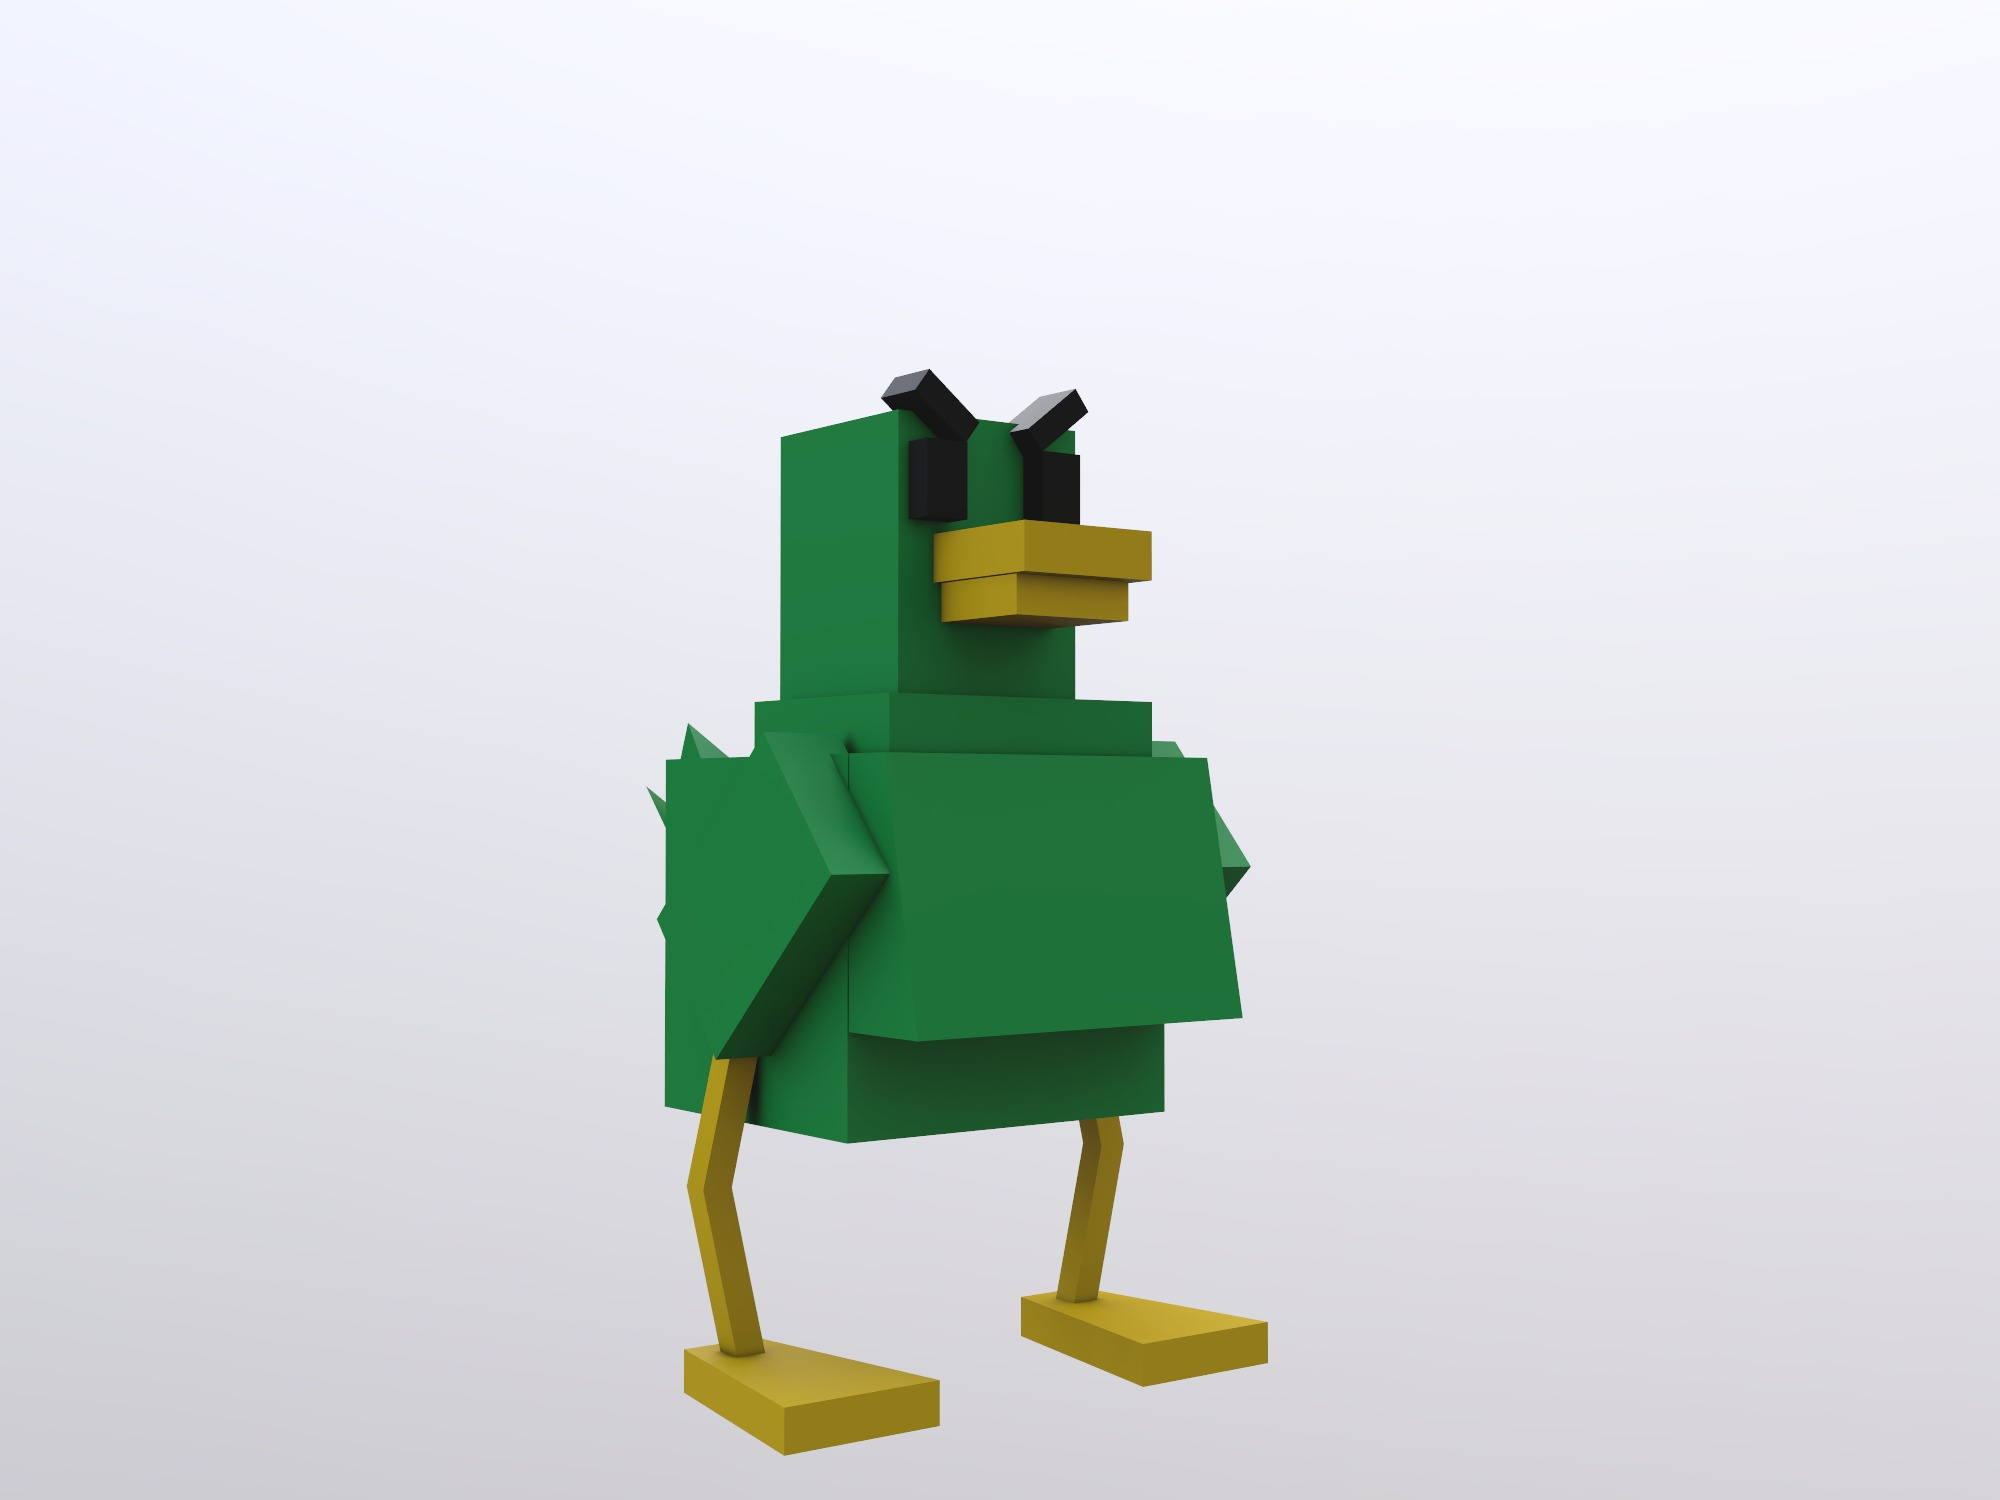 Bossy Duck - 3D design by starlion365 on Aug 25, 2018